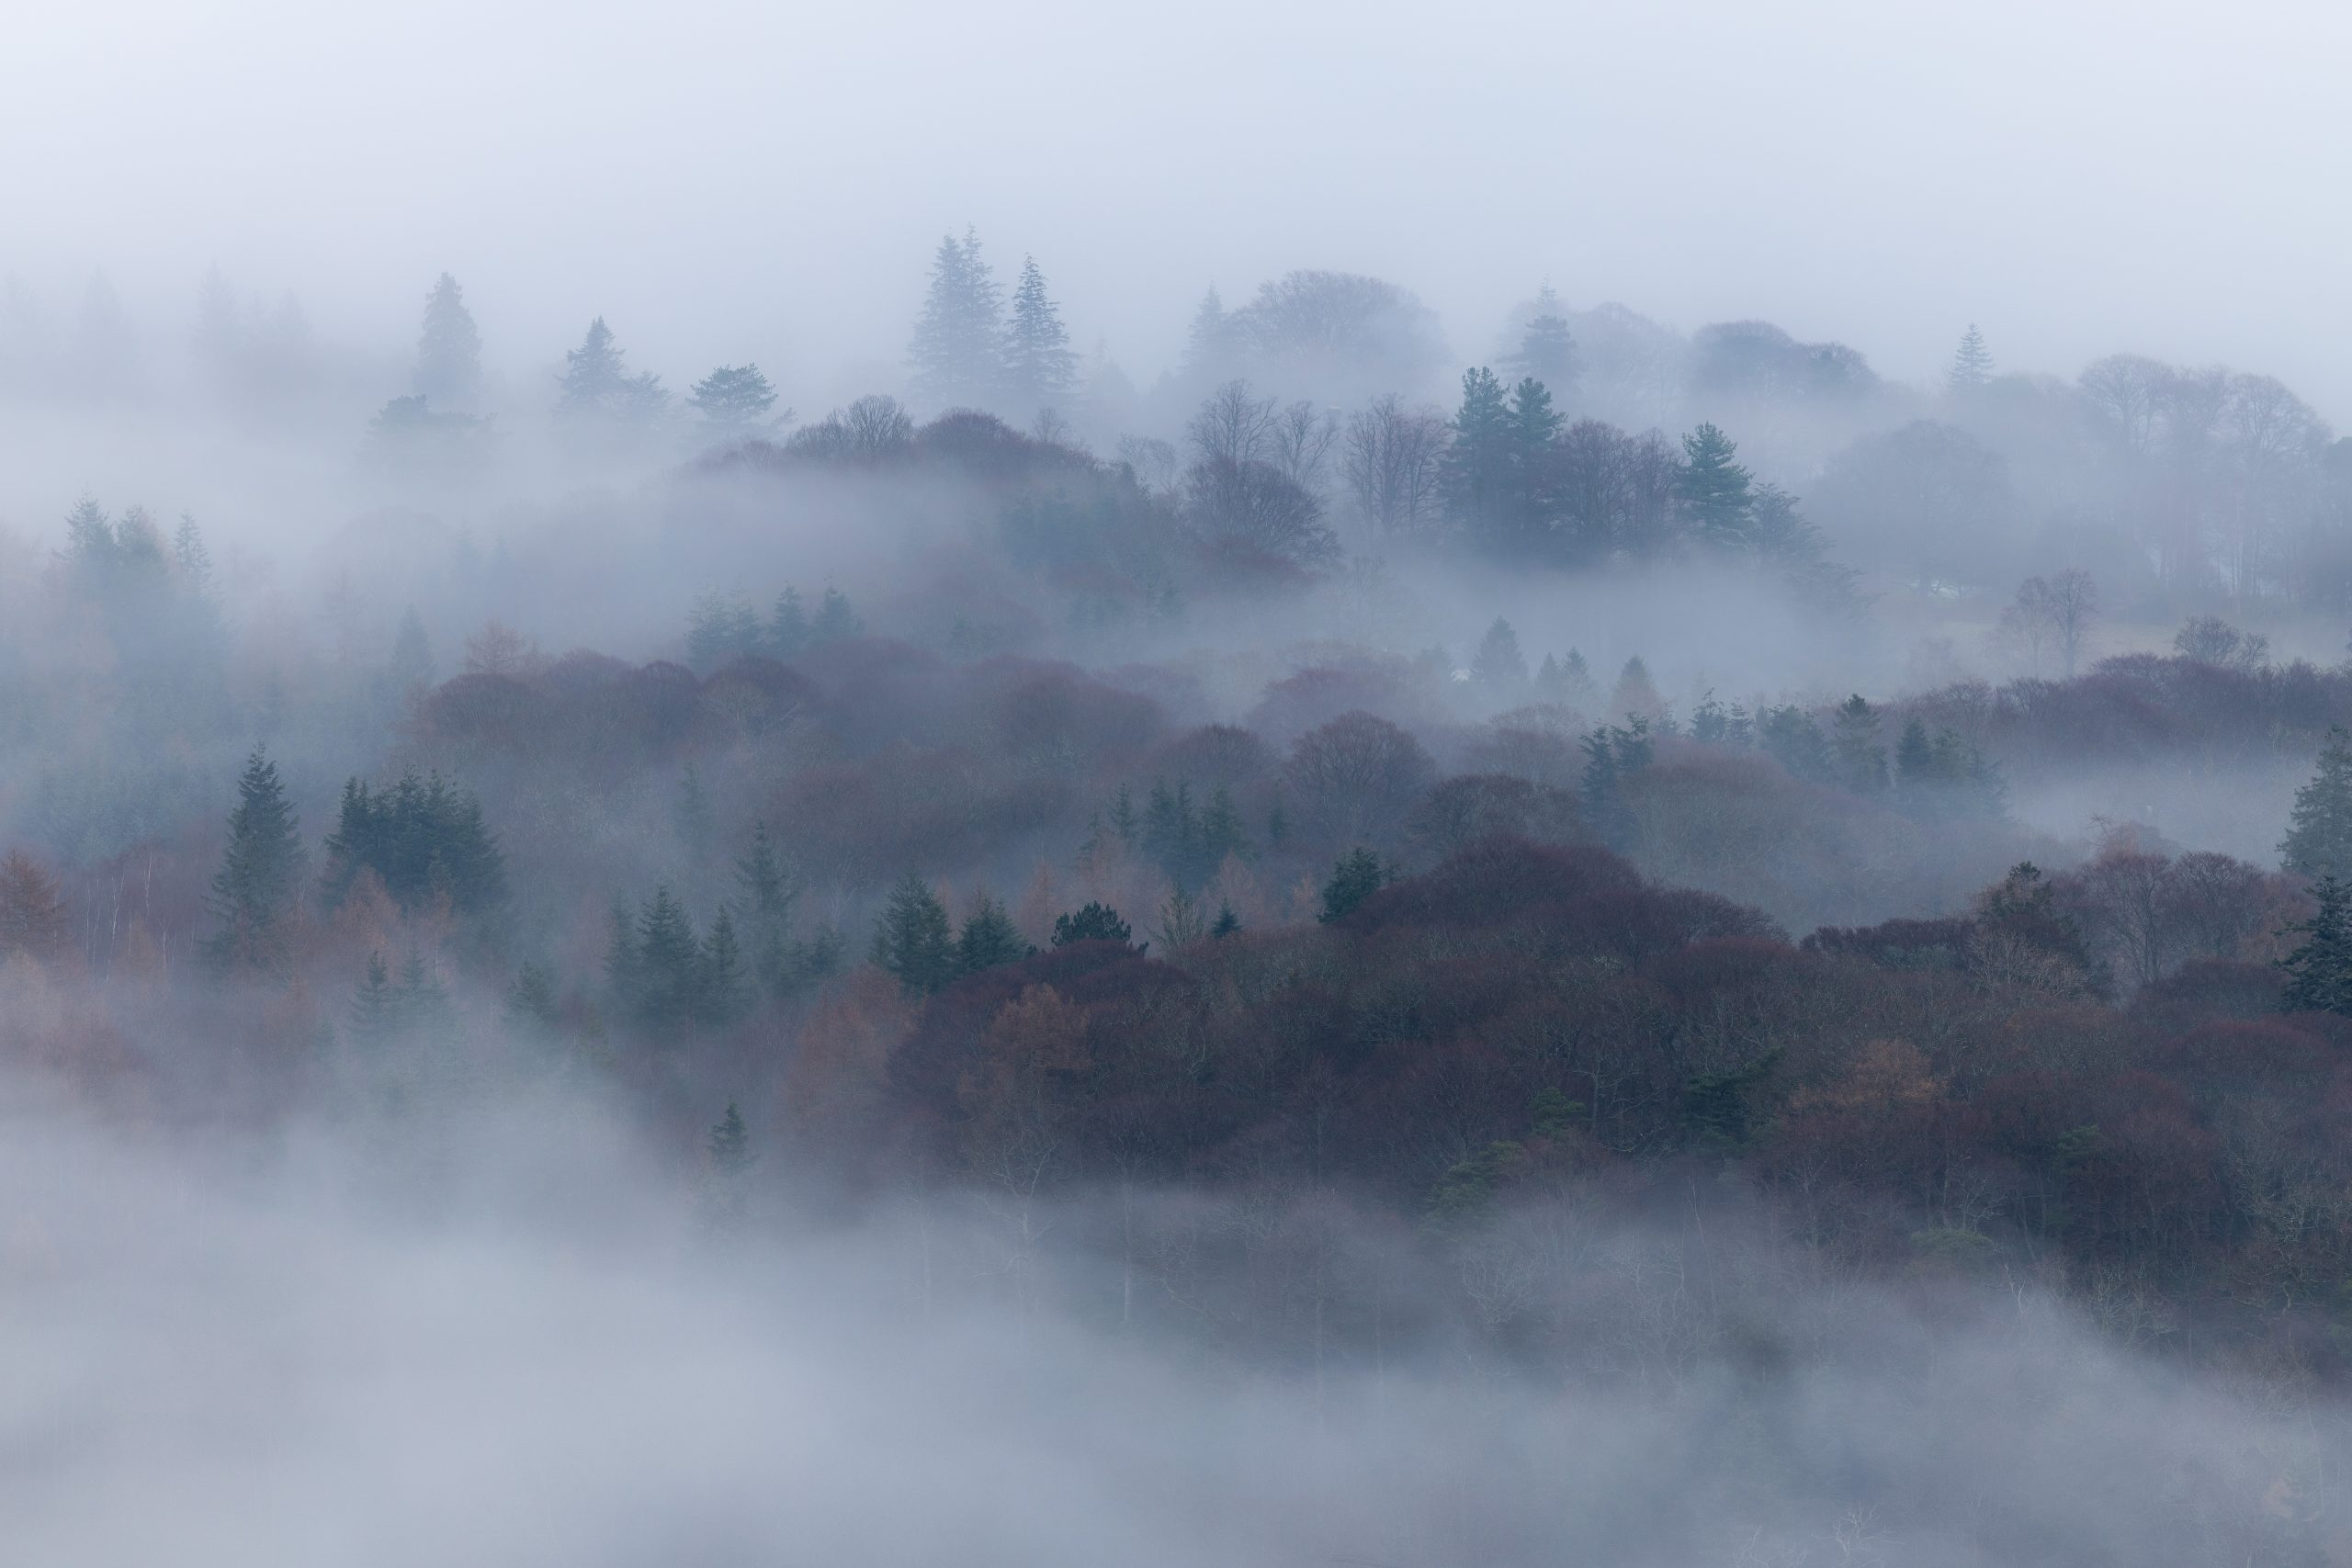 Thick fog and cloud inversion masking the trees in winter in the Lake District